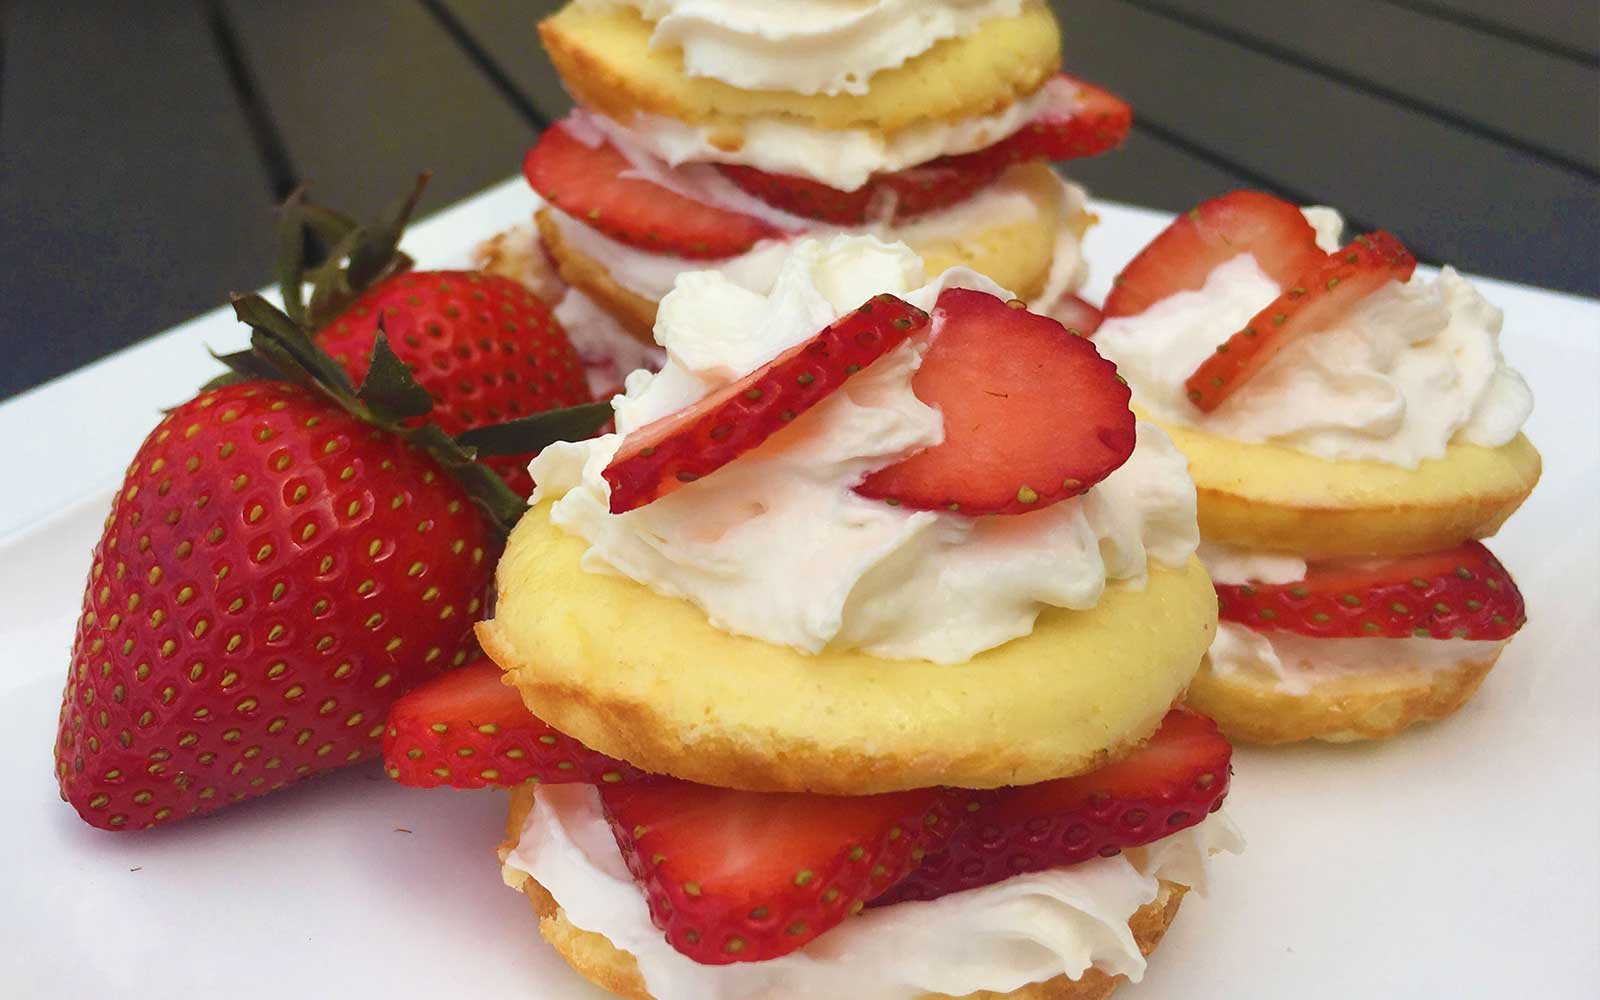 Low sugar High Fiber Strawberry Shortcake